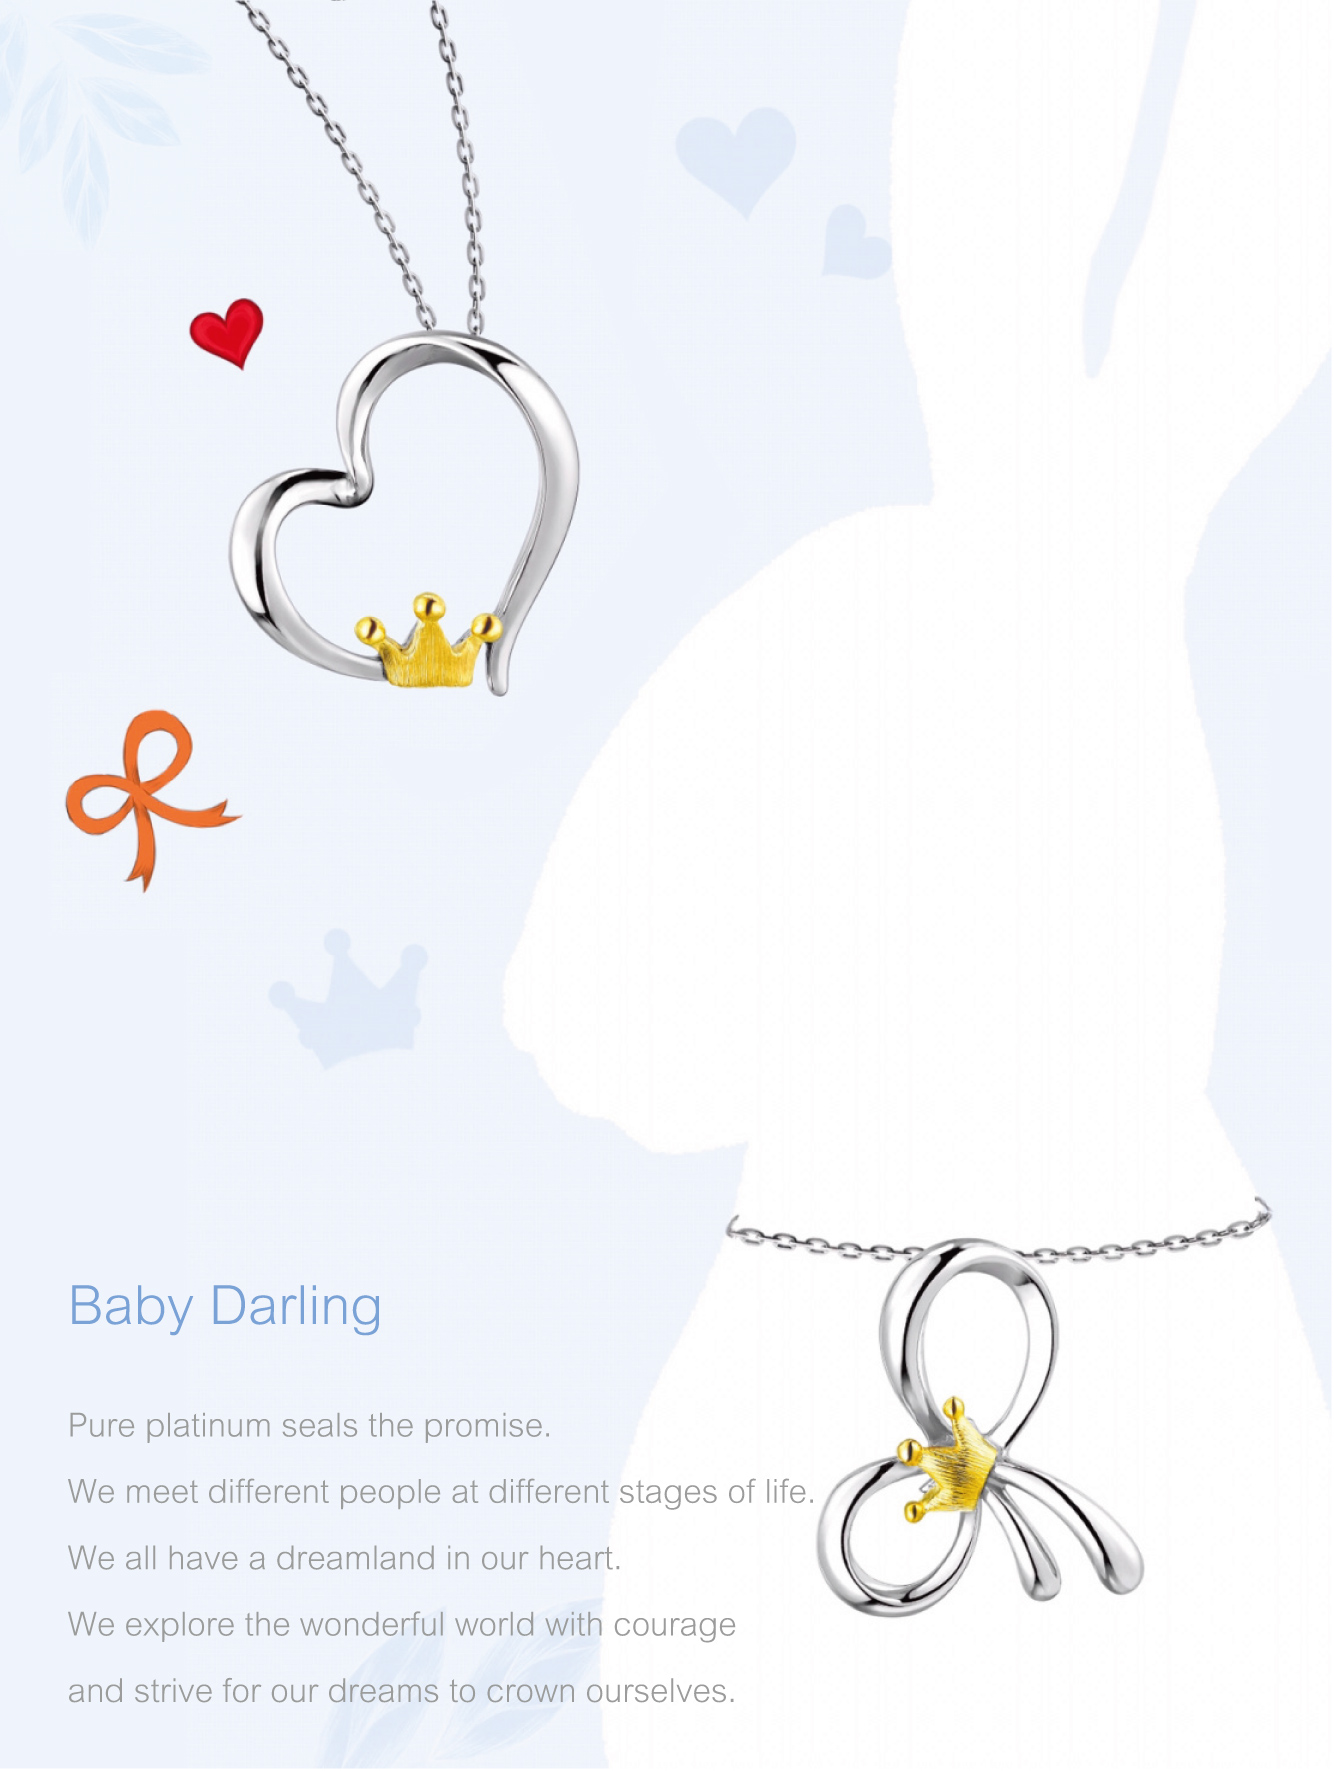 Pt Baby Darling Collection